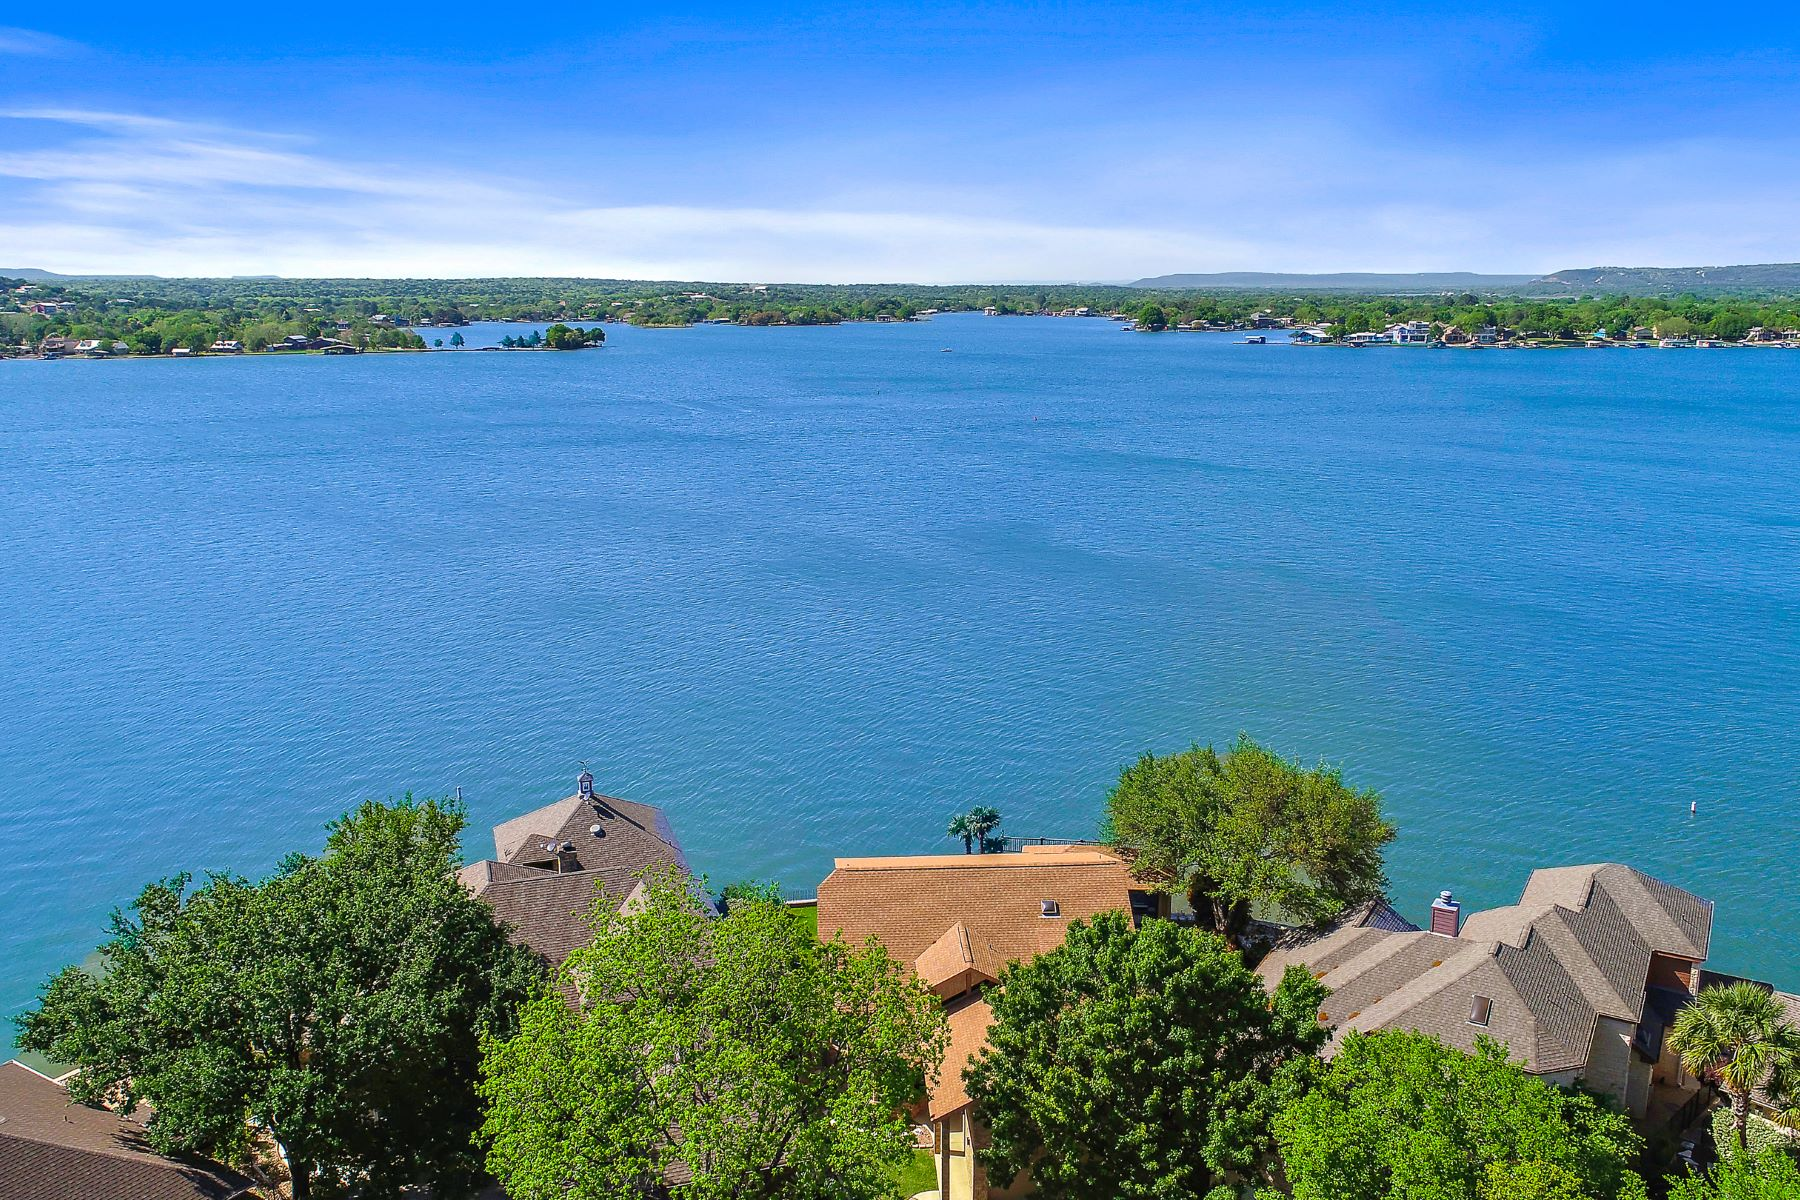 Single Family Homes for Sale at Fantastic Lake House Built with the Lake in Mind 42 Beaver Island On Lake LBJ Granite Shoals, Texas 78654 United States